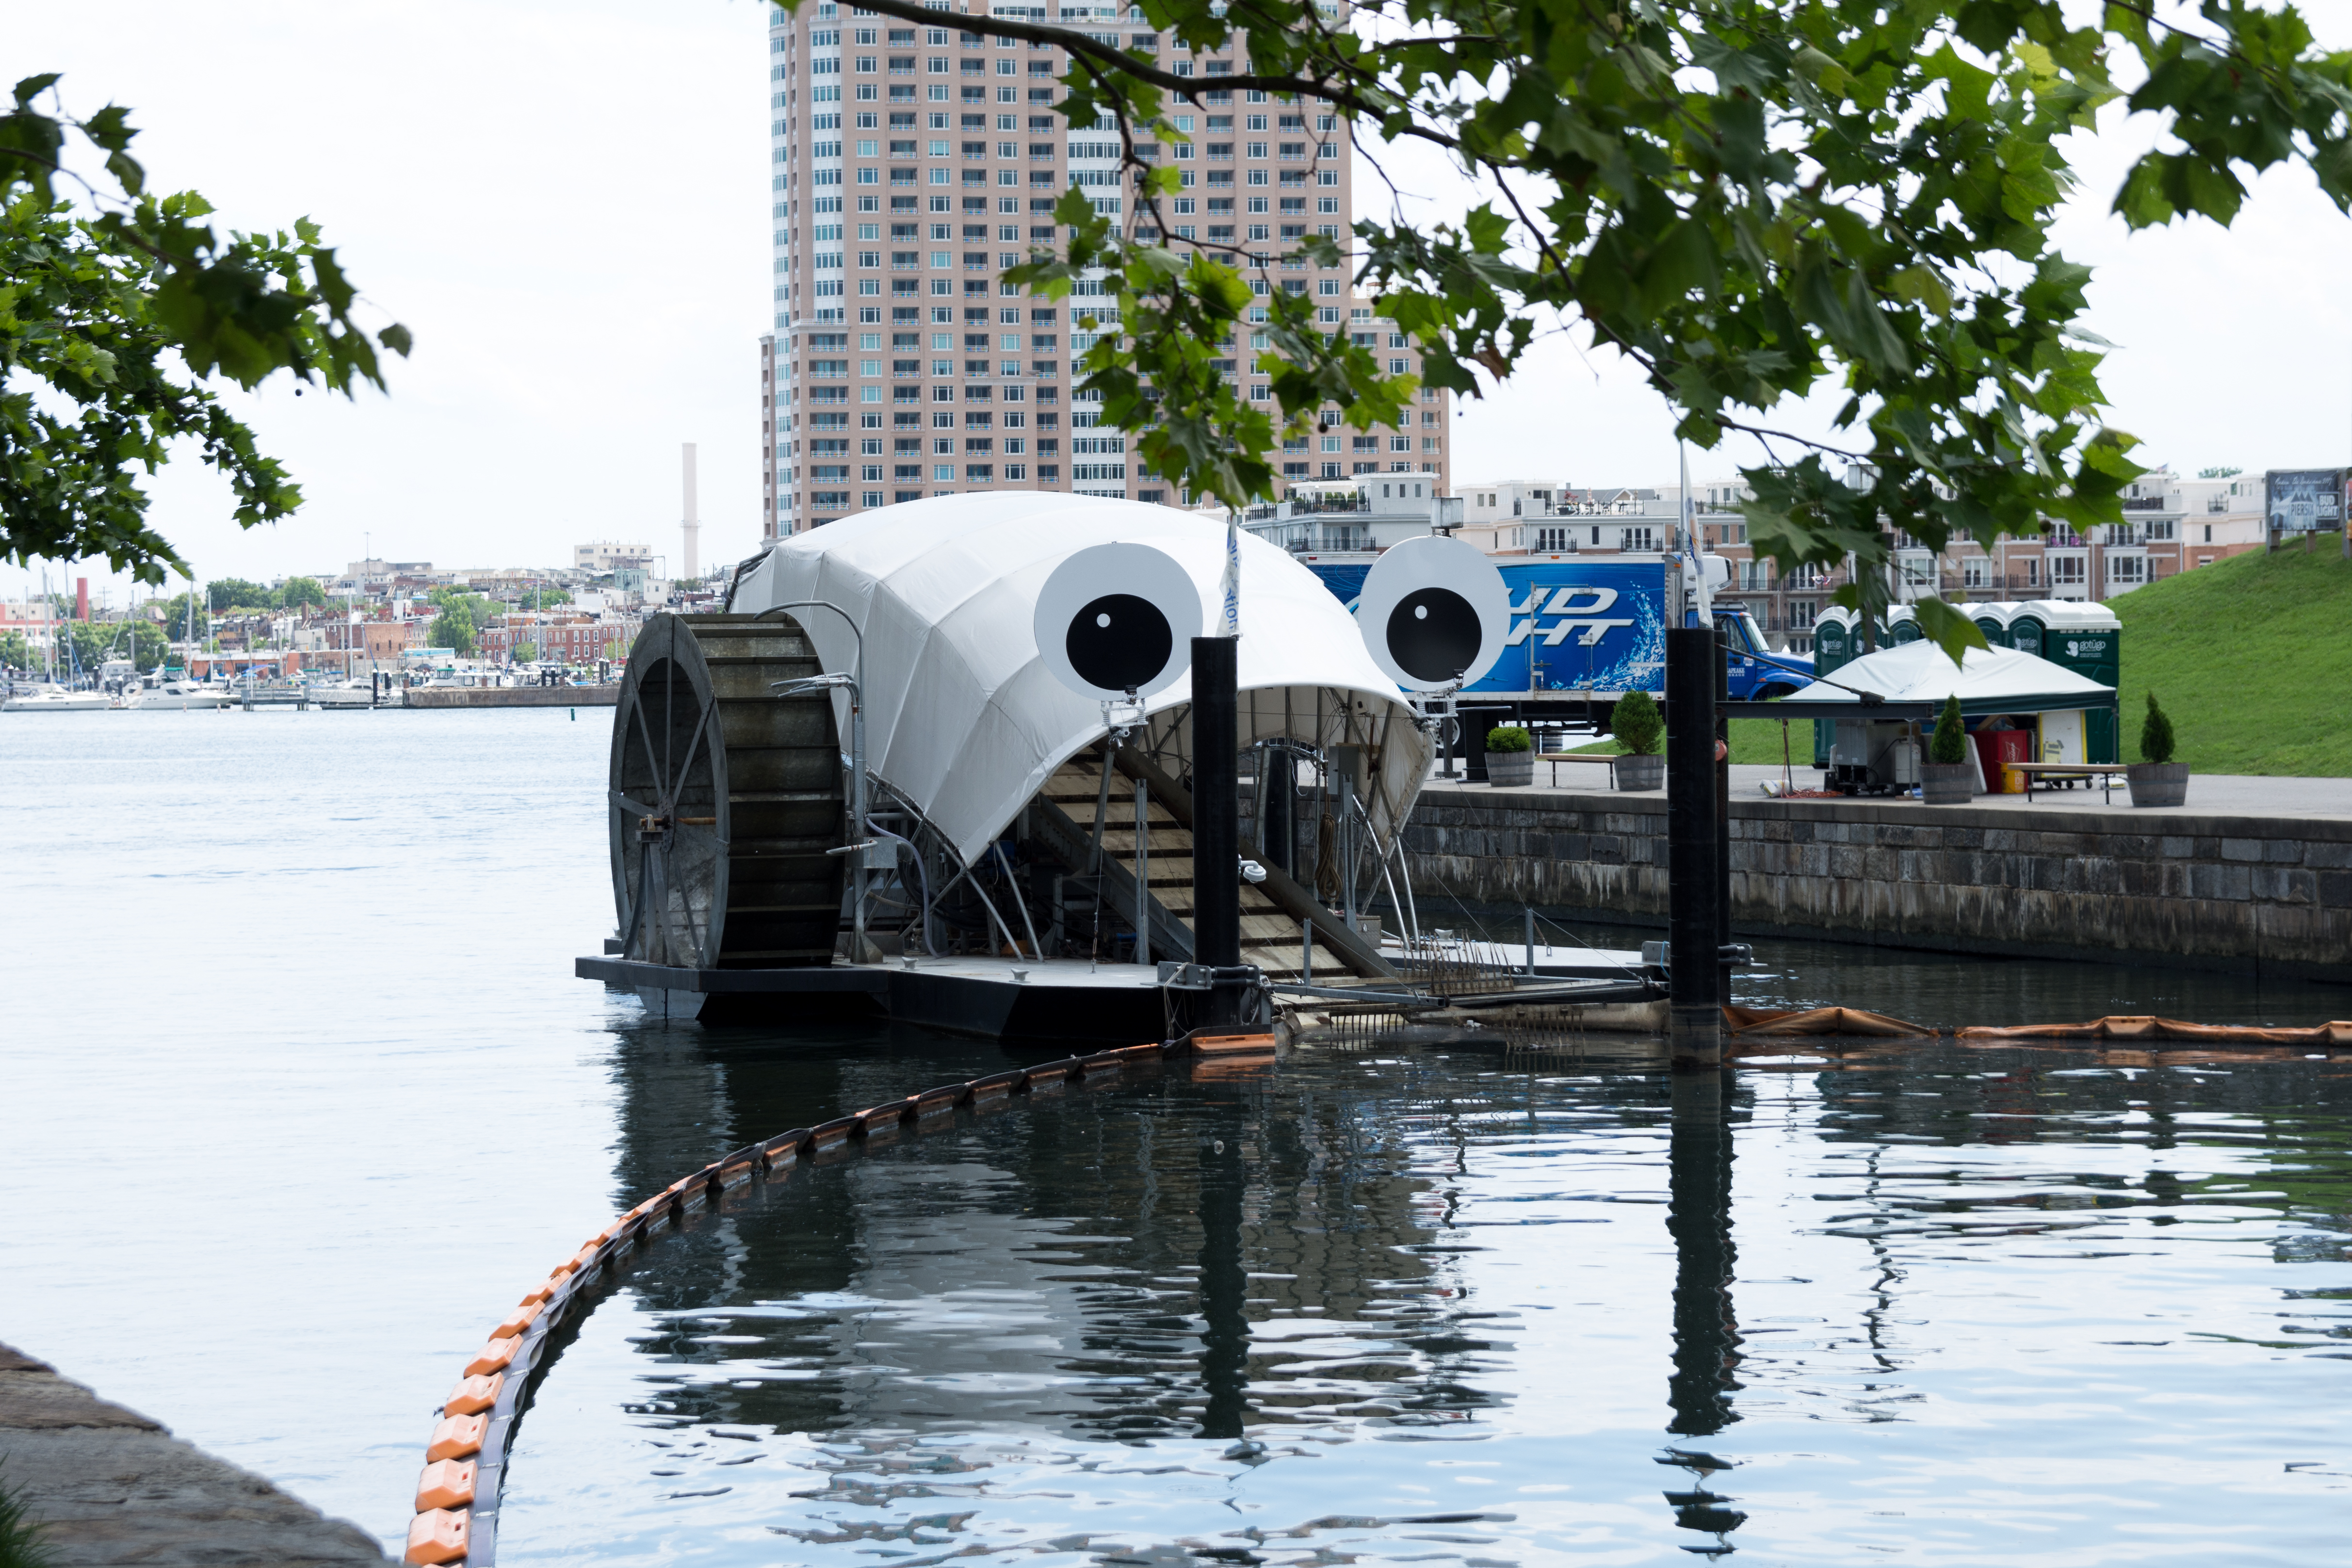 There S Too Much Trash In The Chicago River We Are Building A Robot Controlled By You To Clean It Up